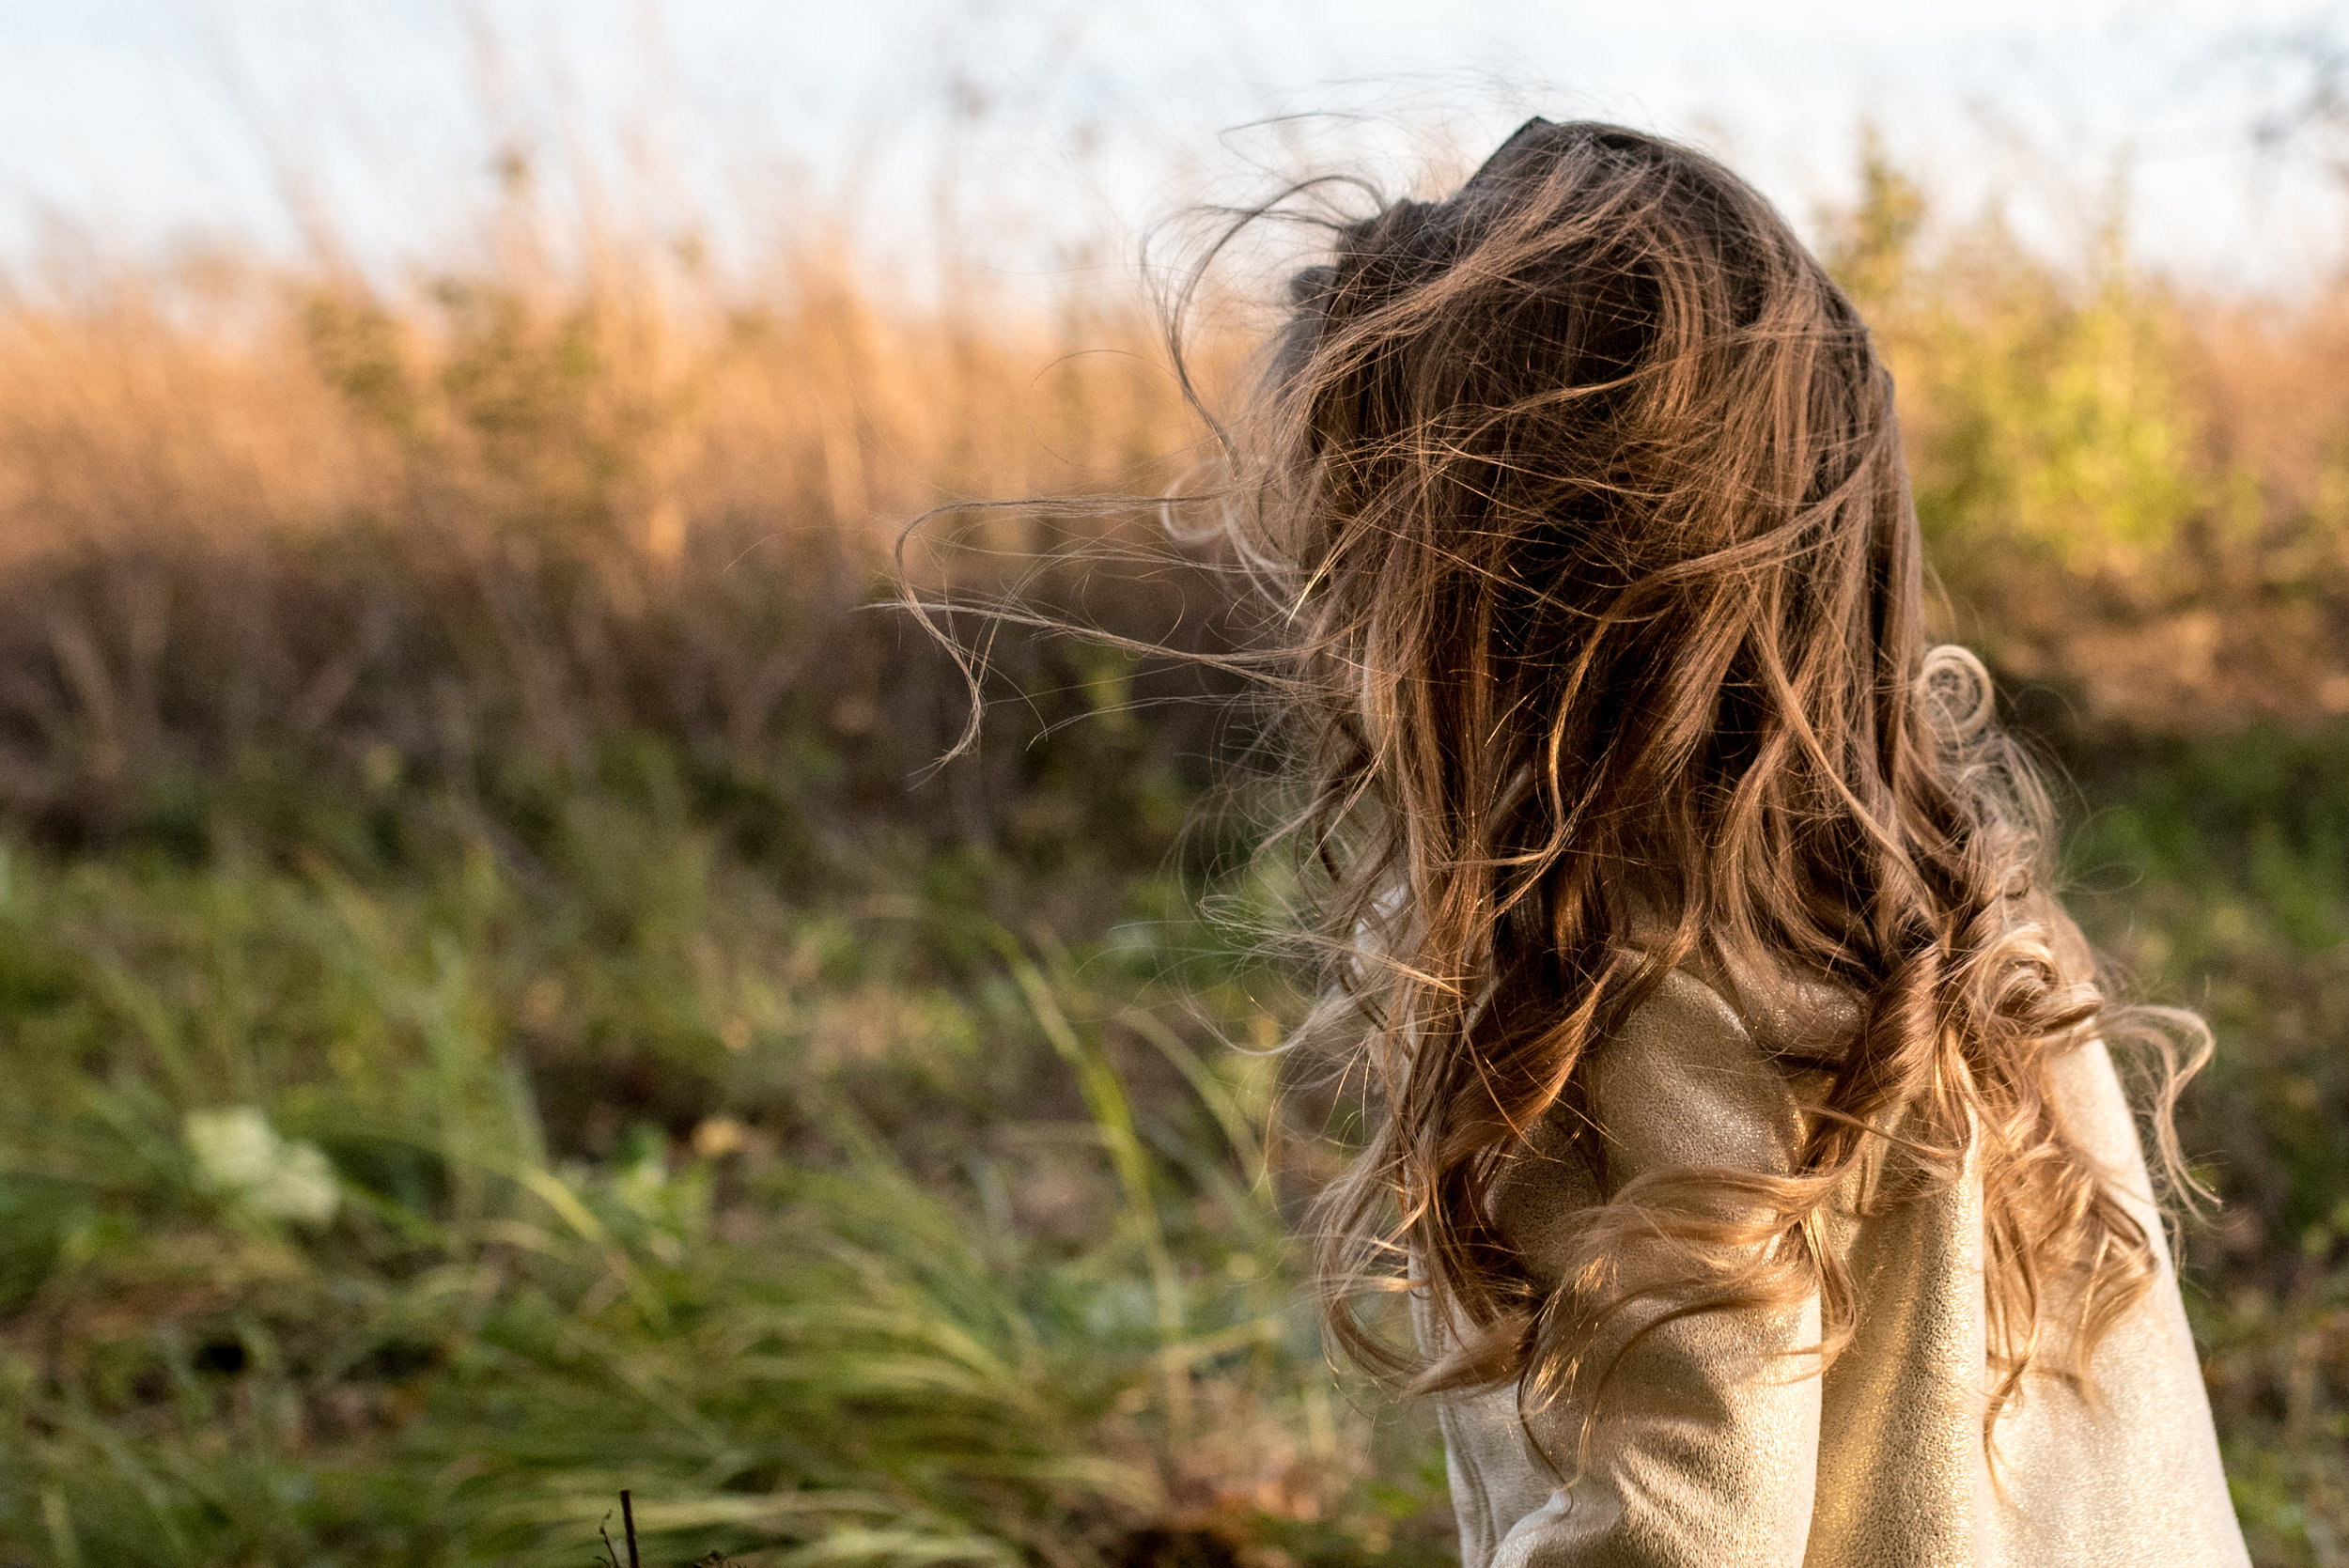 Young girl in a field with long hair blowing in the wind